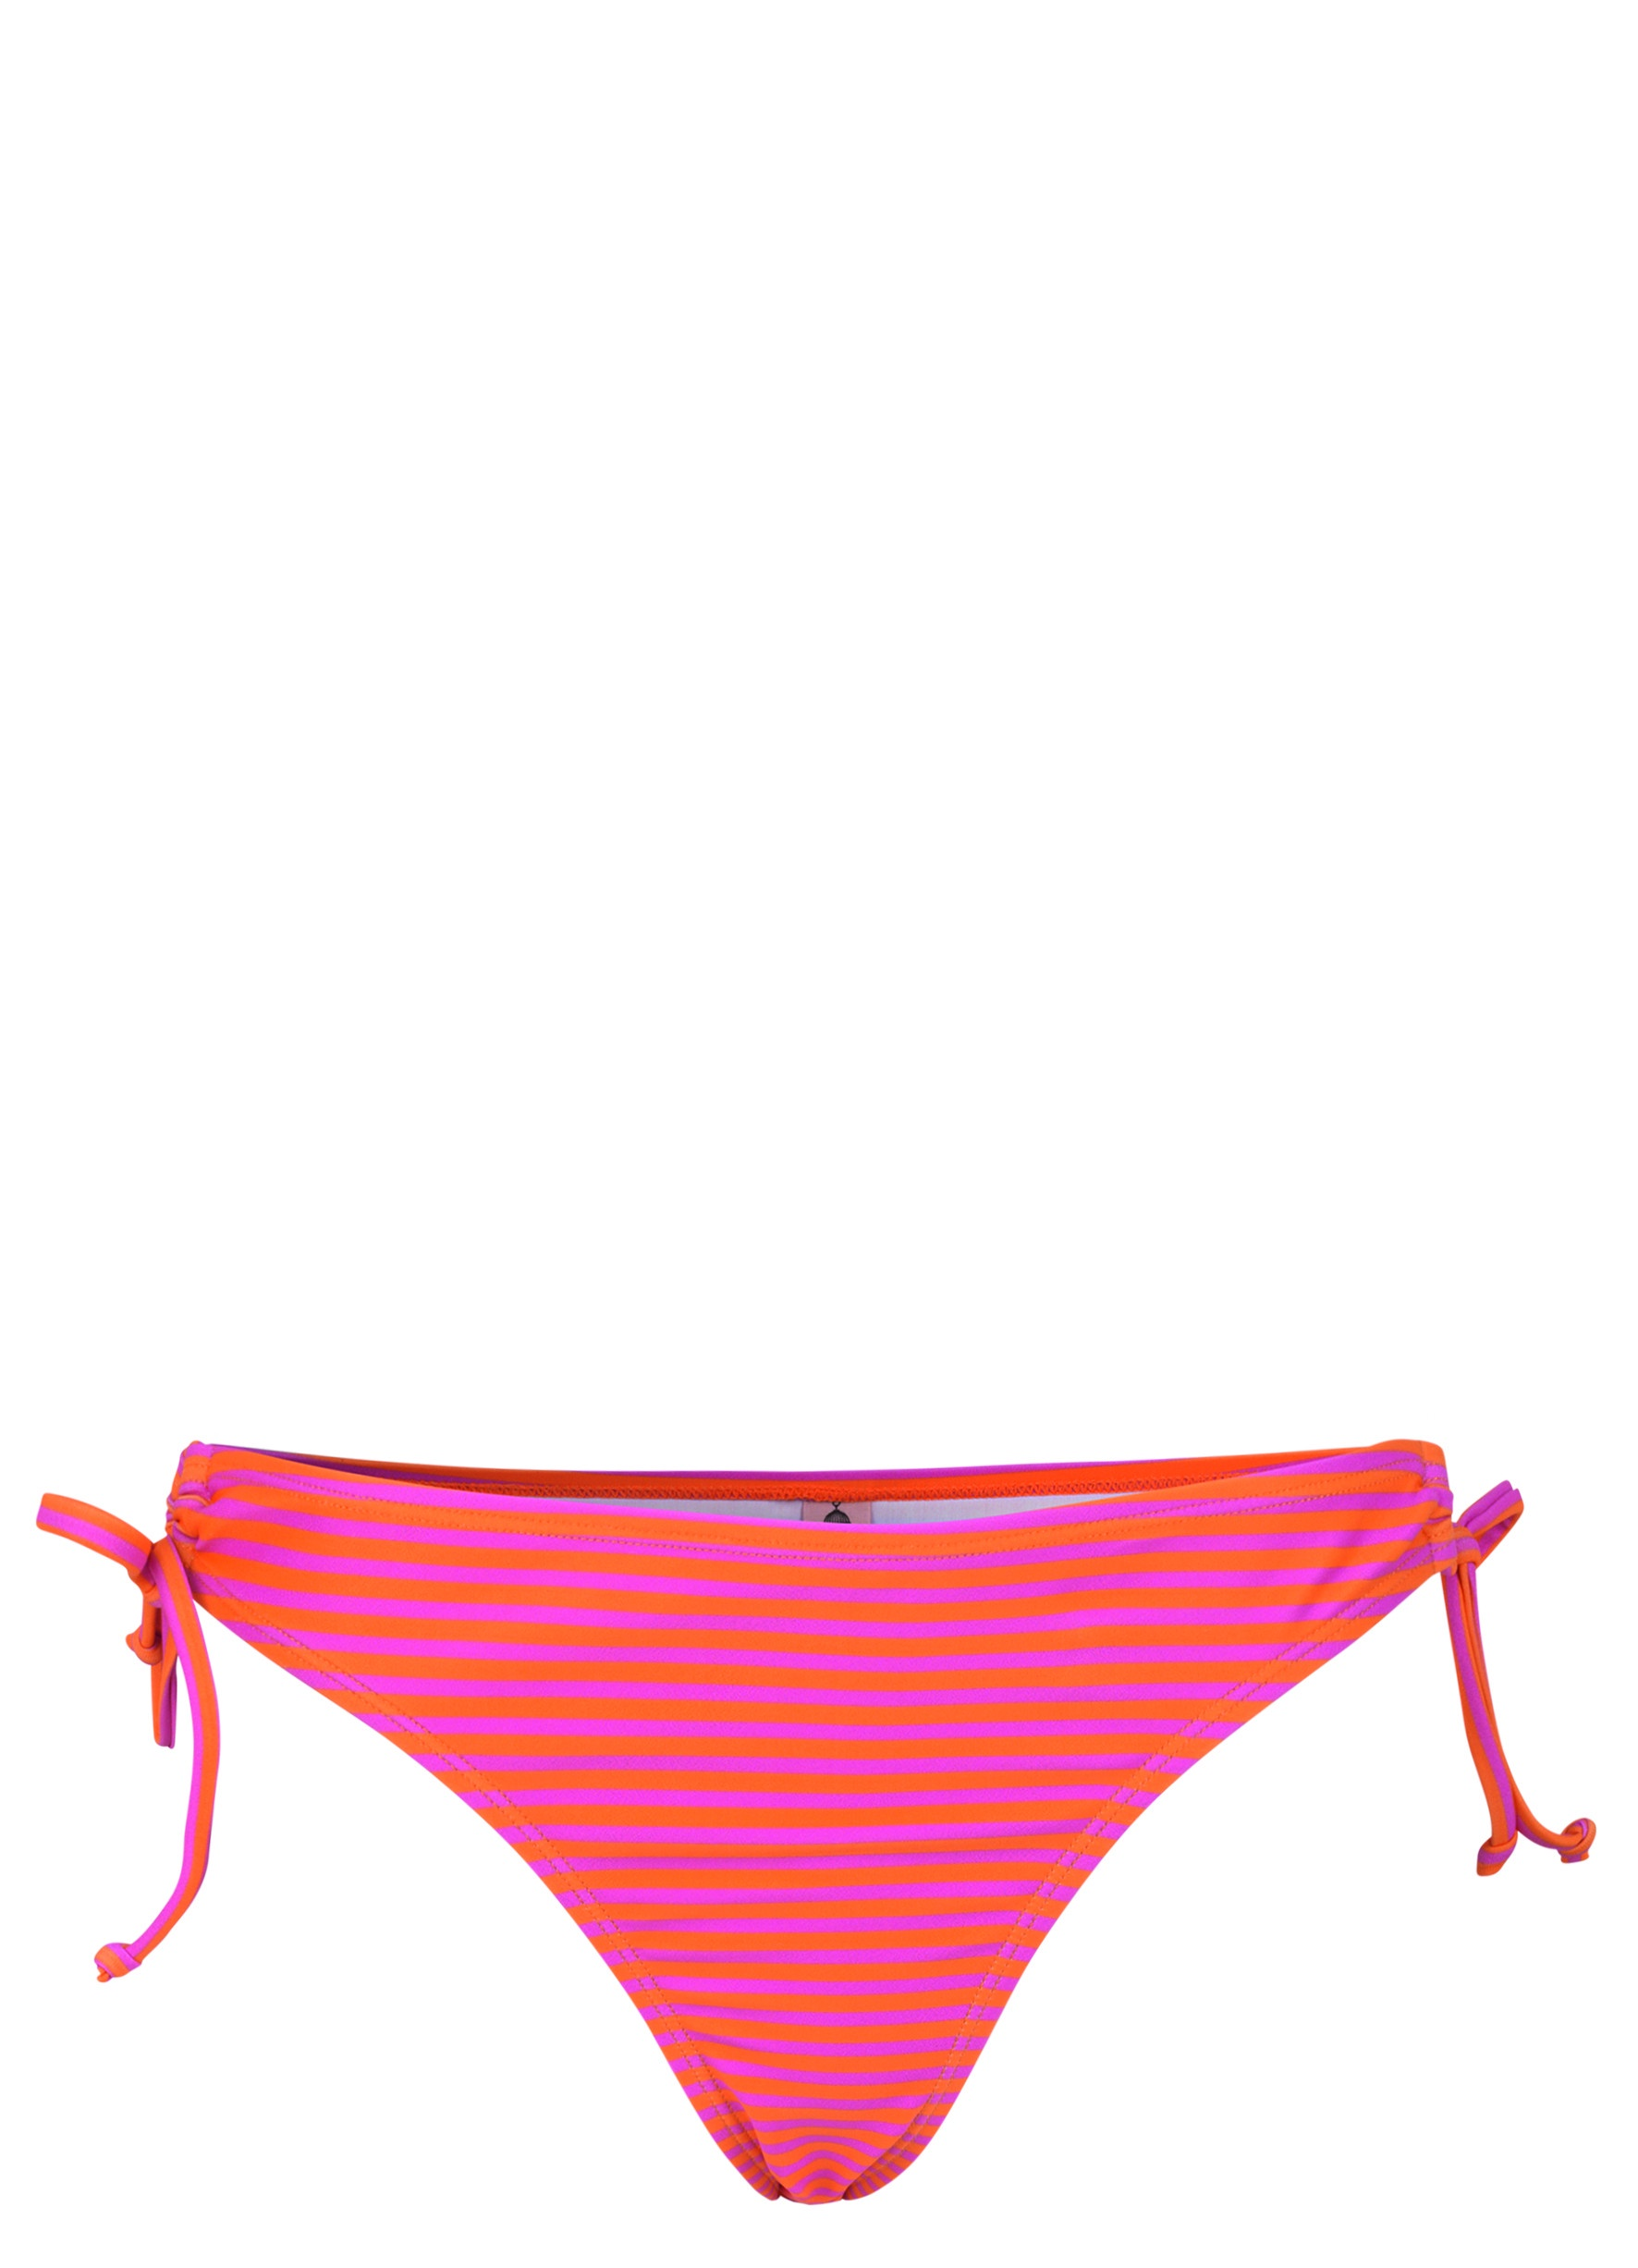 Bibi Simple Stripe bikini bottoms